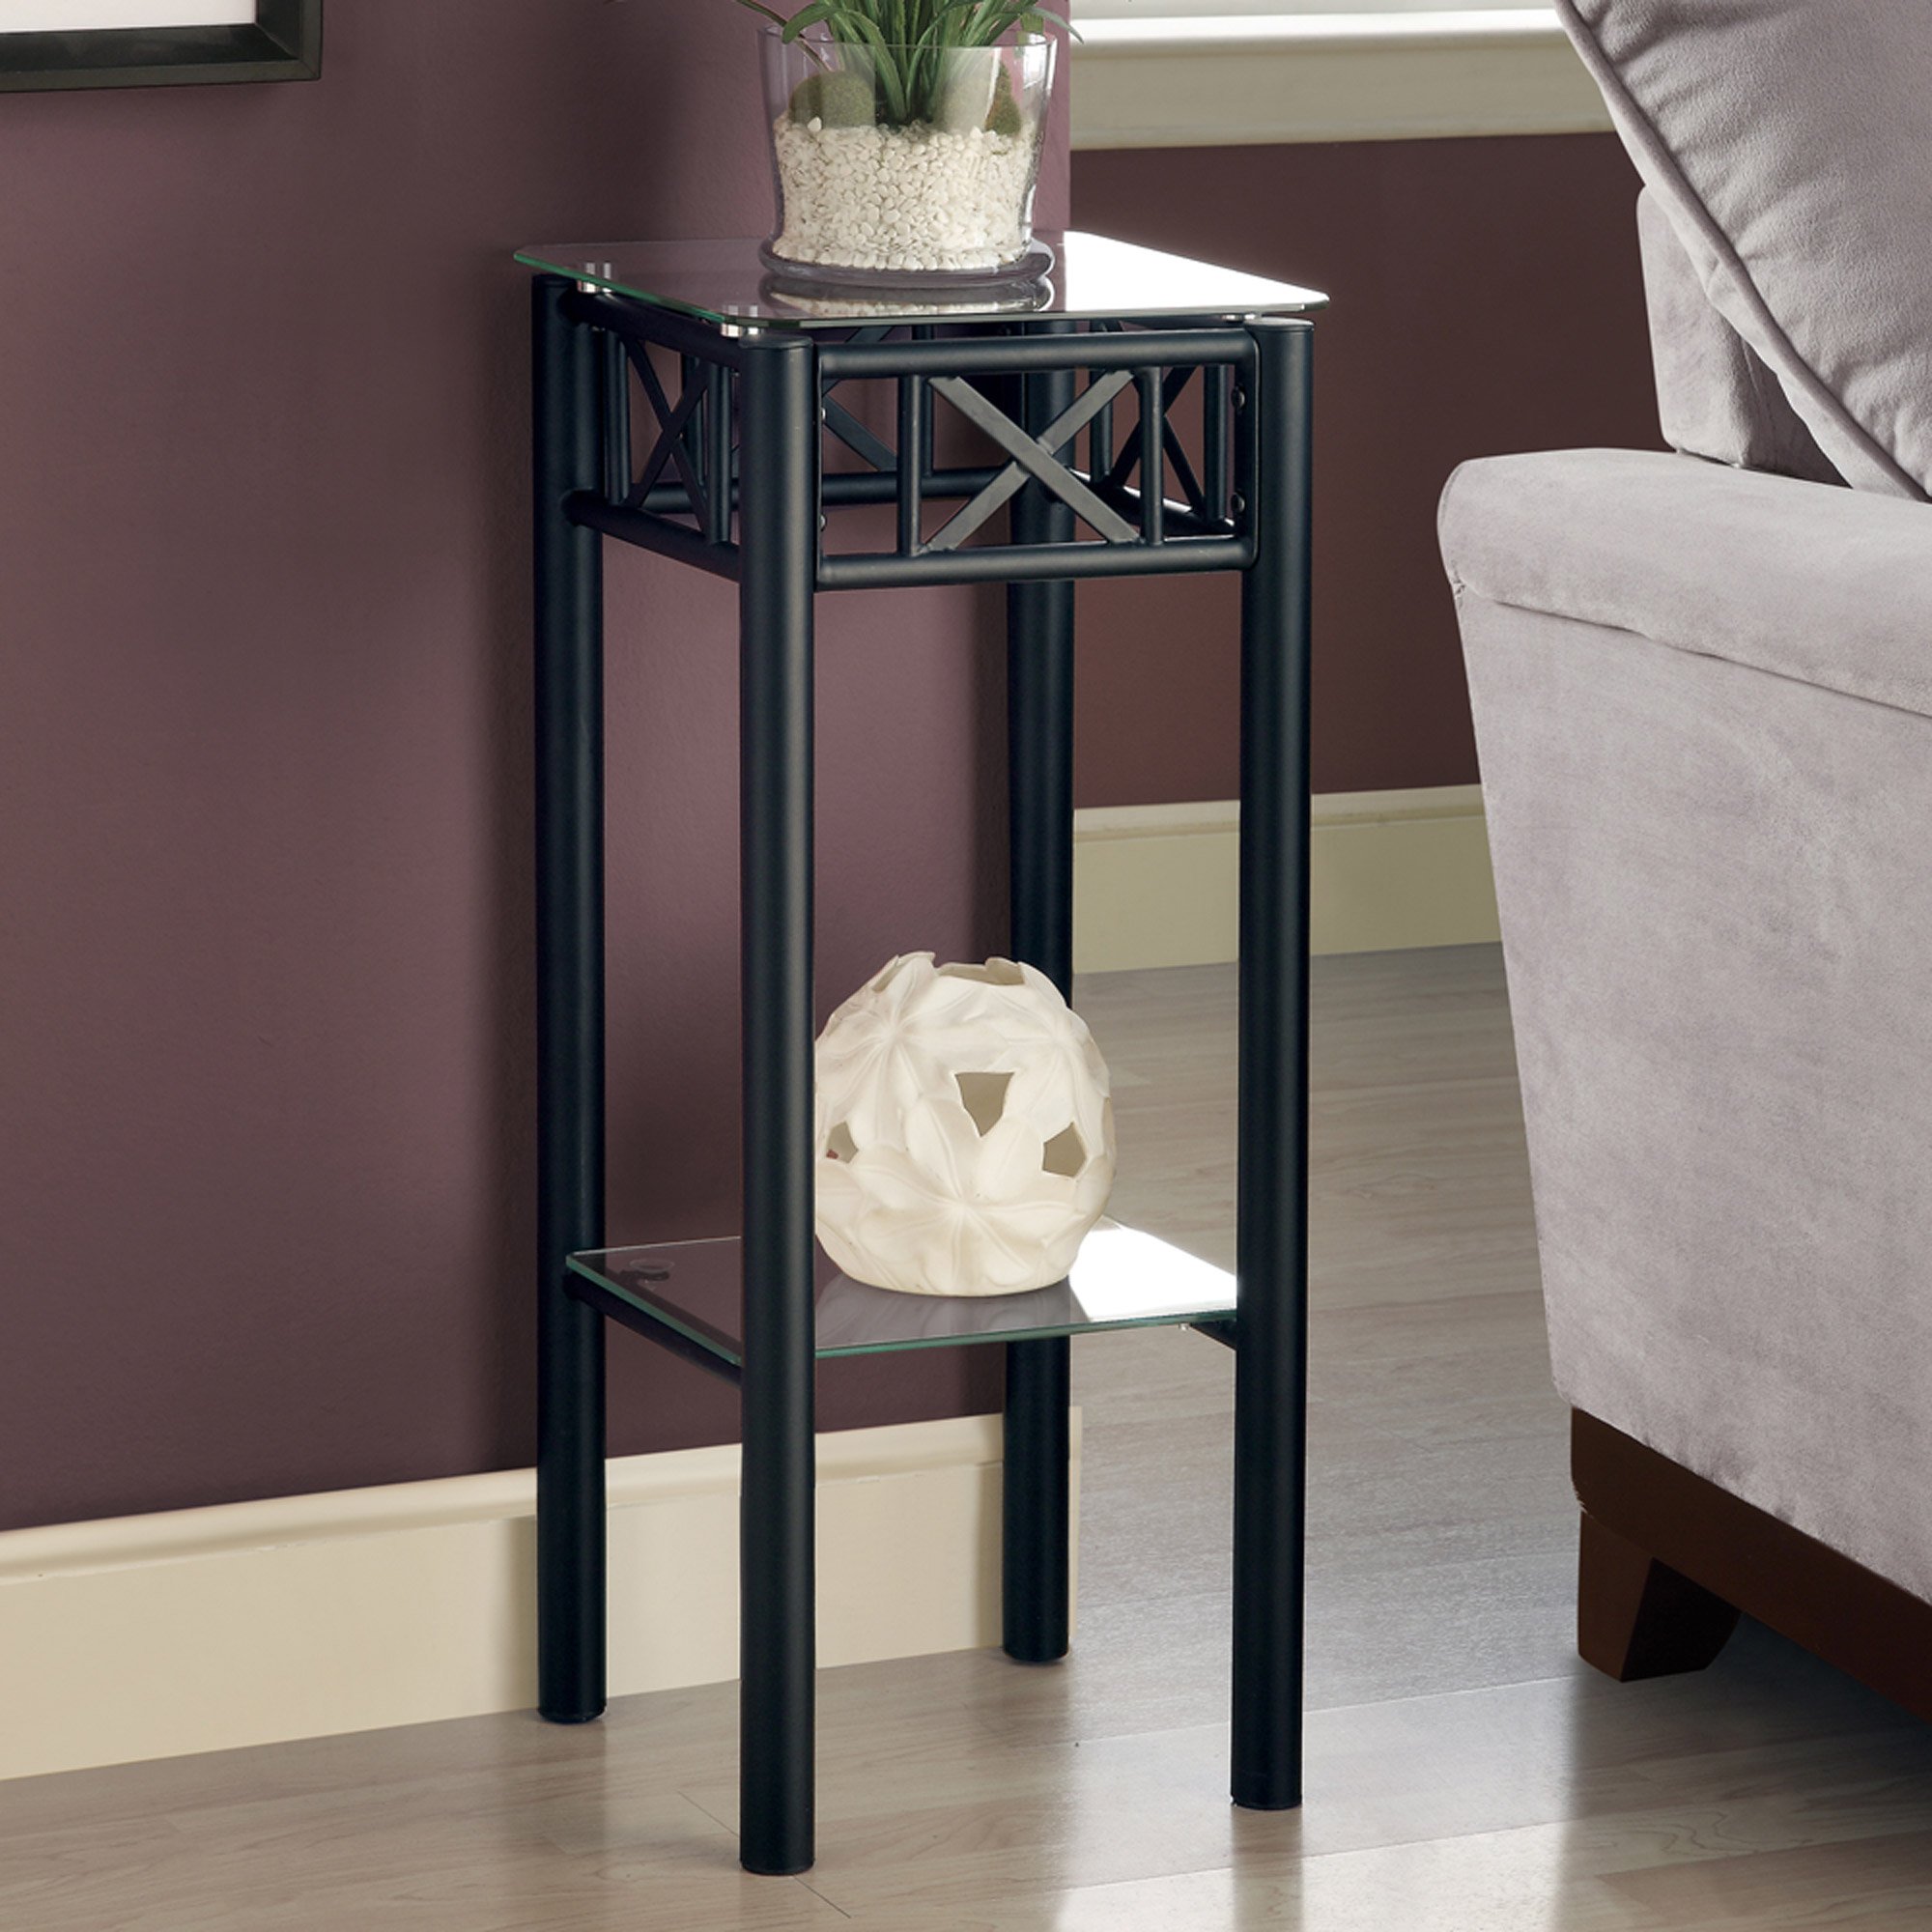 Metal Plant Stand with Tempered Glass Top, Black